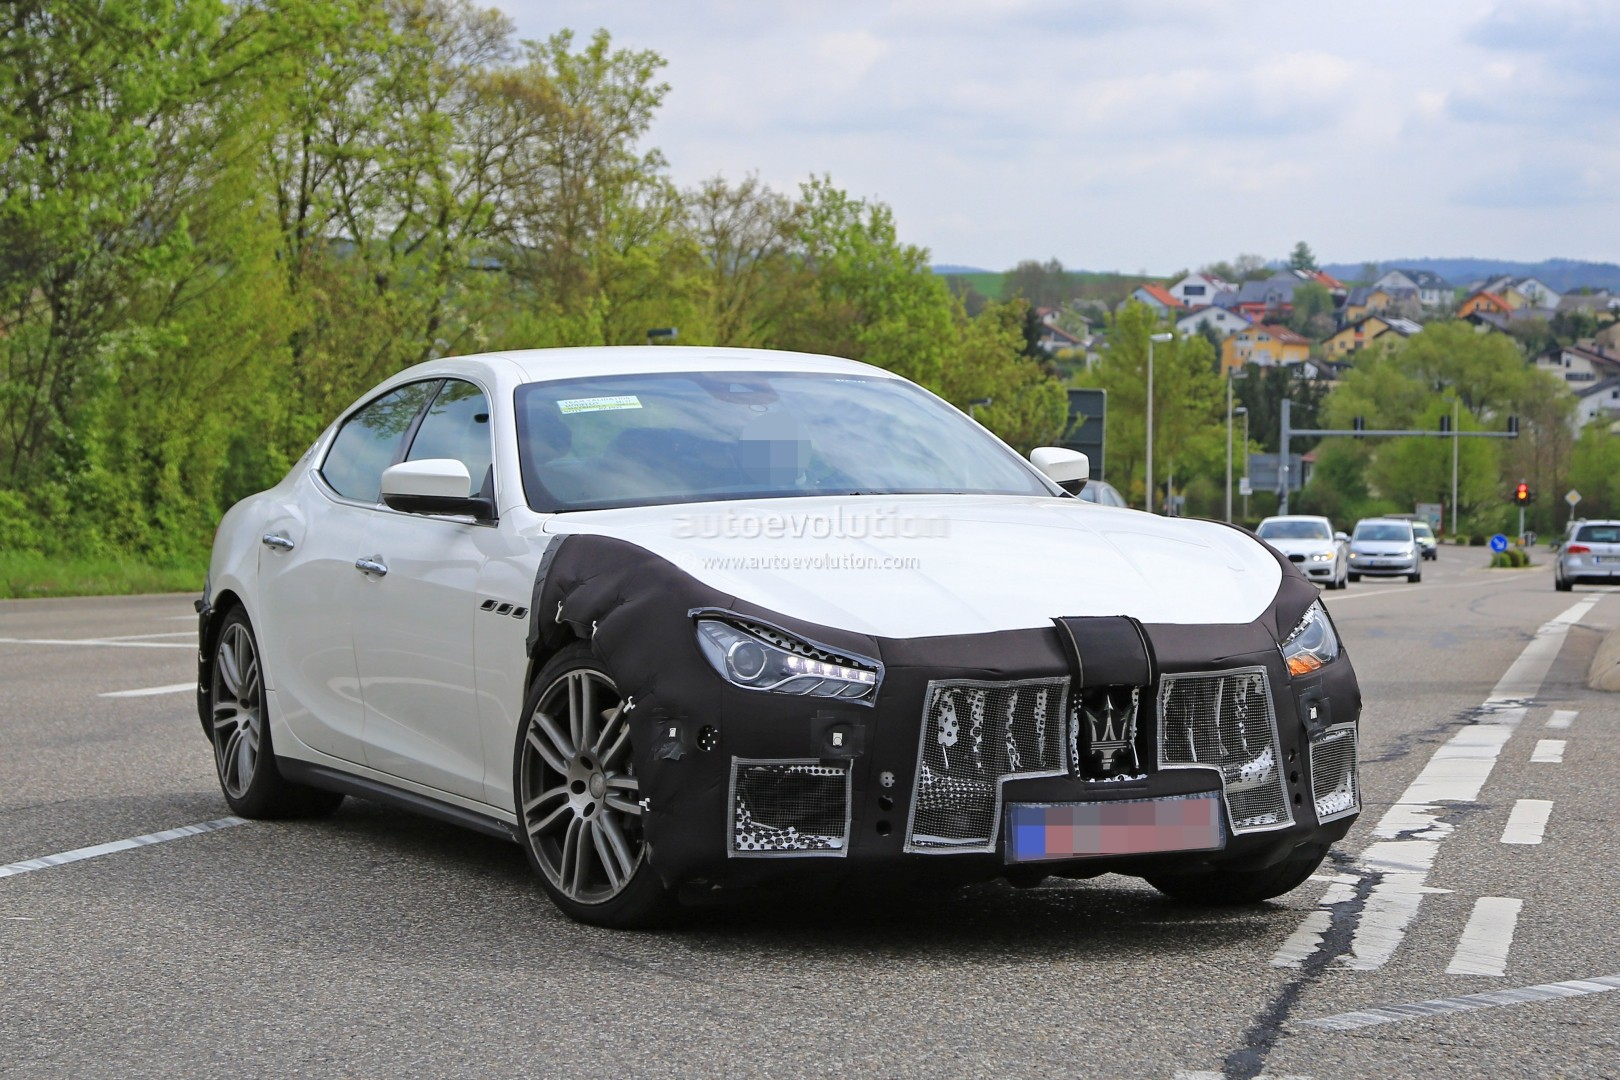 2018 maserati ghibli facelift spied up close is this the new 450 hp top dog autoevolution. Black Bedroom Furniture Sets. Home Design Ideas